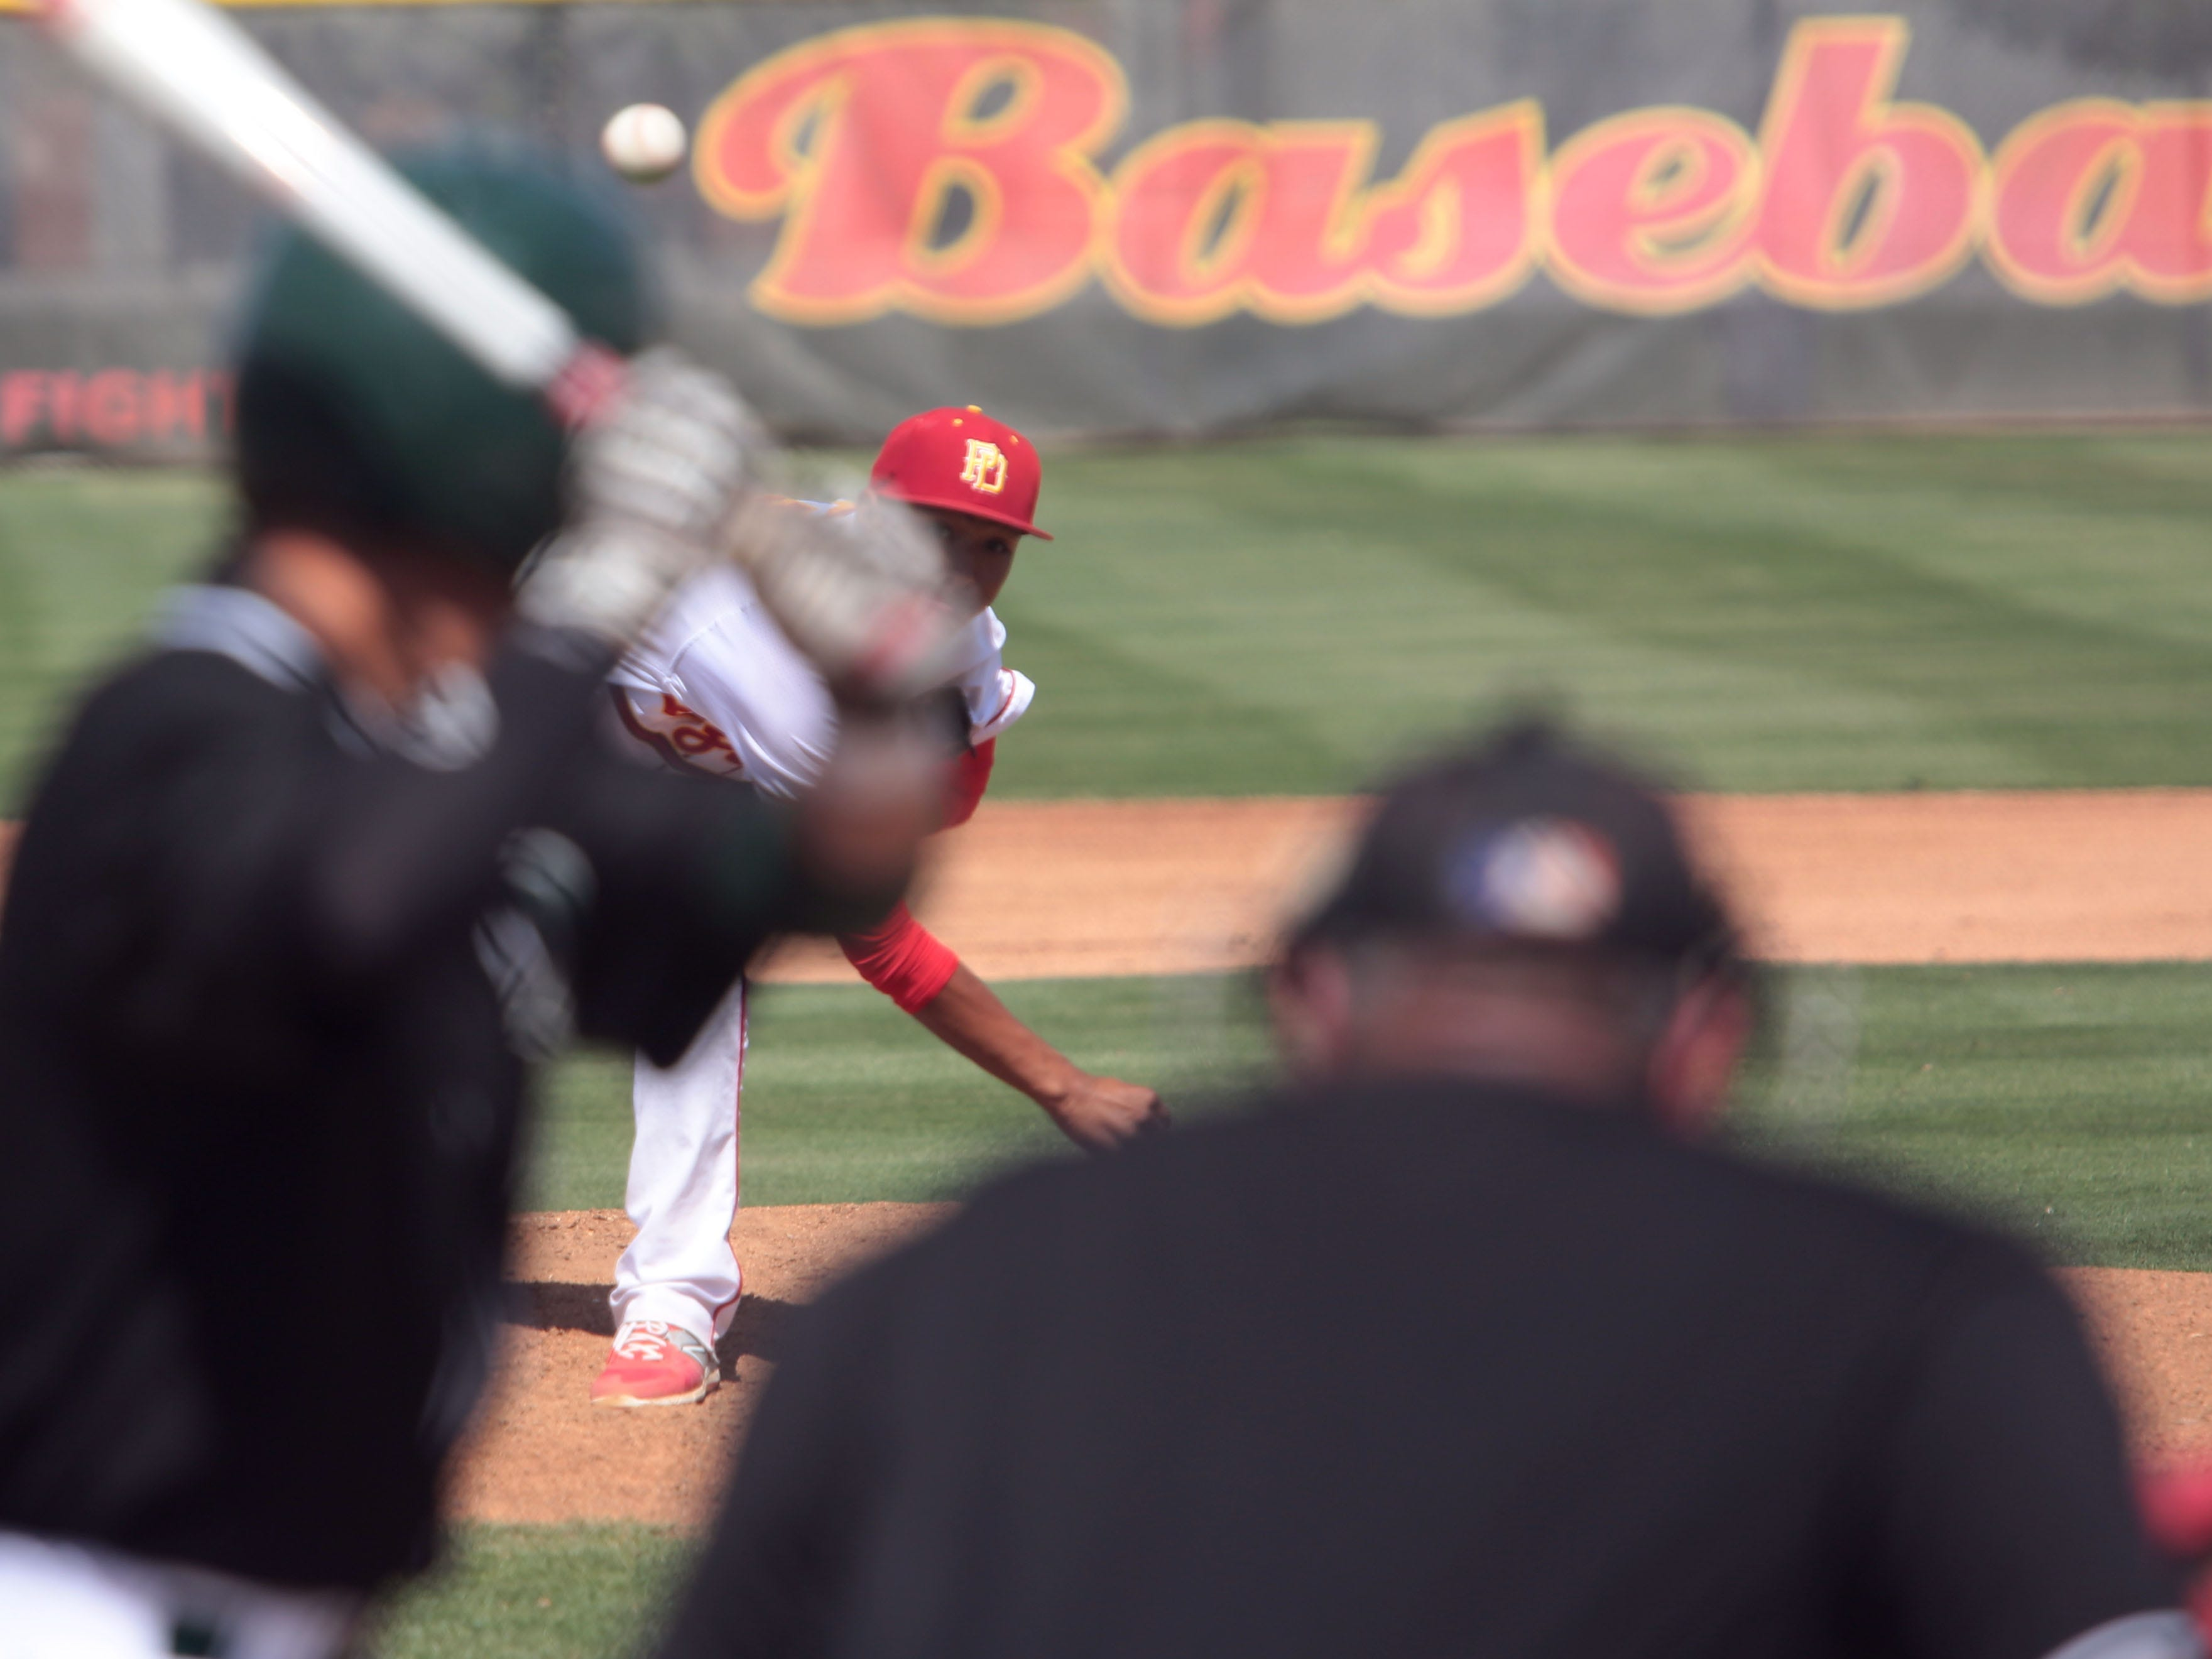 Palm Desert's Jeremiah Estrada pitches against Royal High in the title game of the 53rd annual Coachella Valley Rotary Baseball Classic on Thursday afternoon.